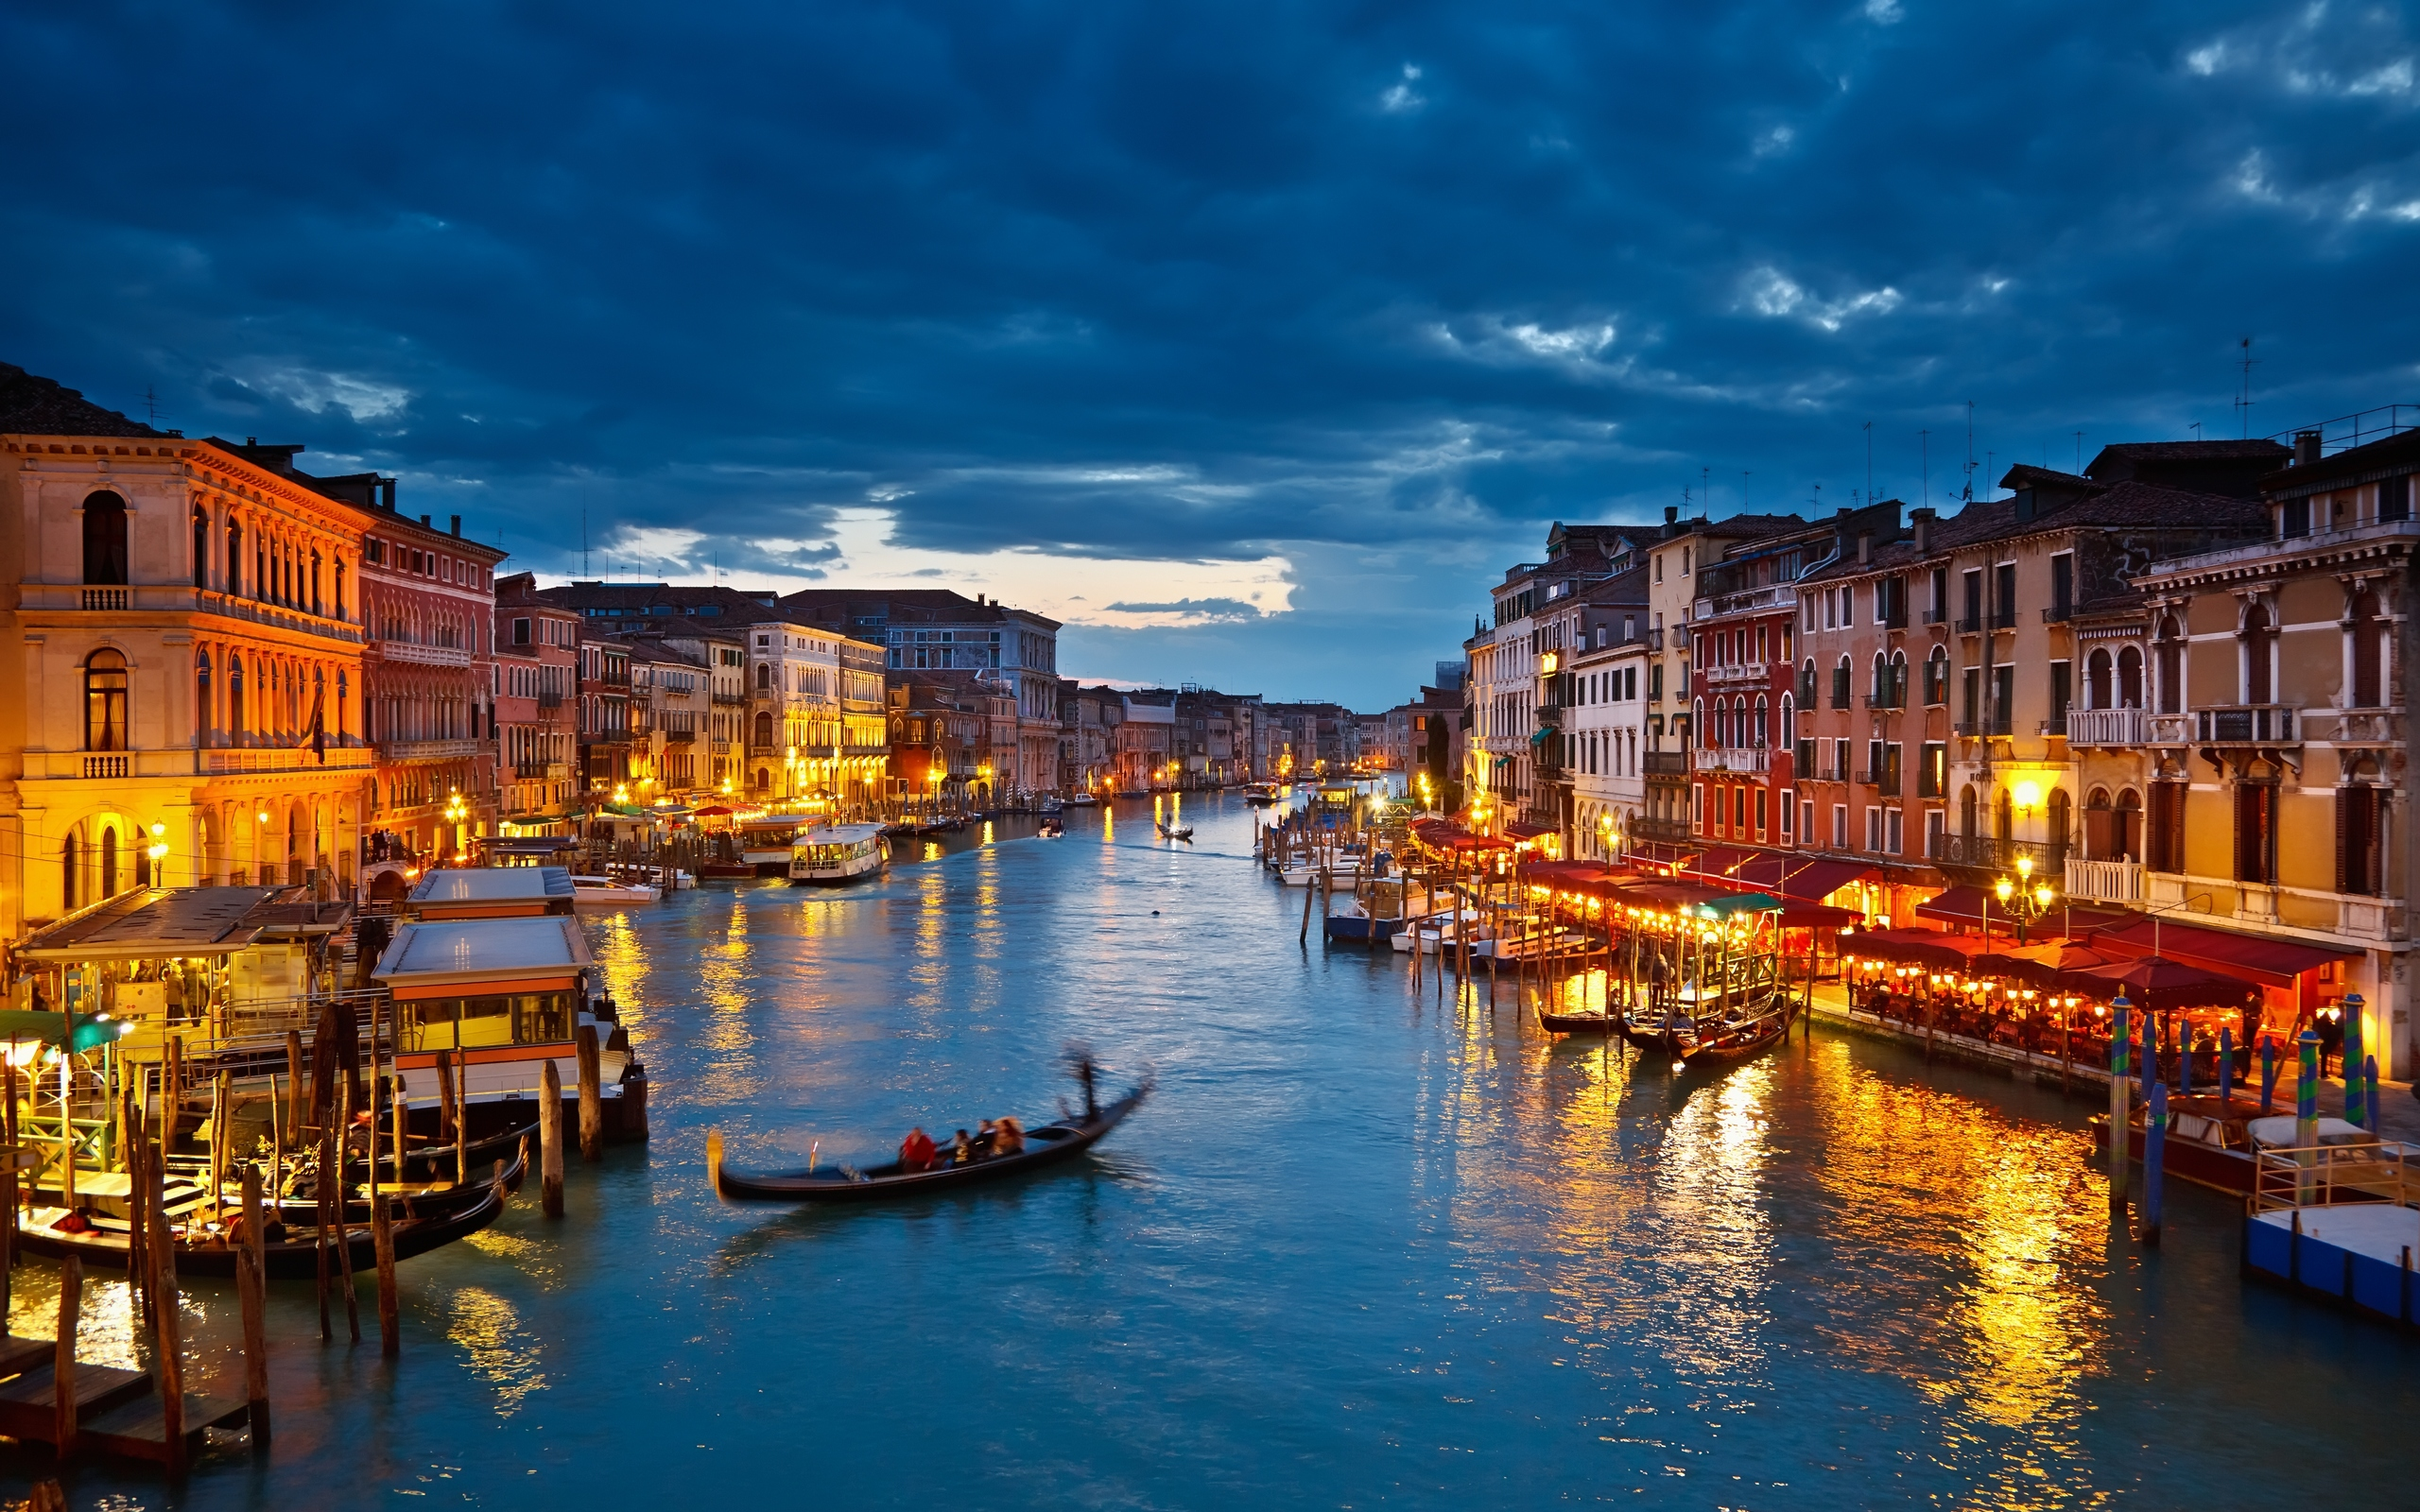 Photos and Images of Venice